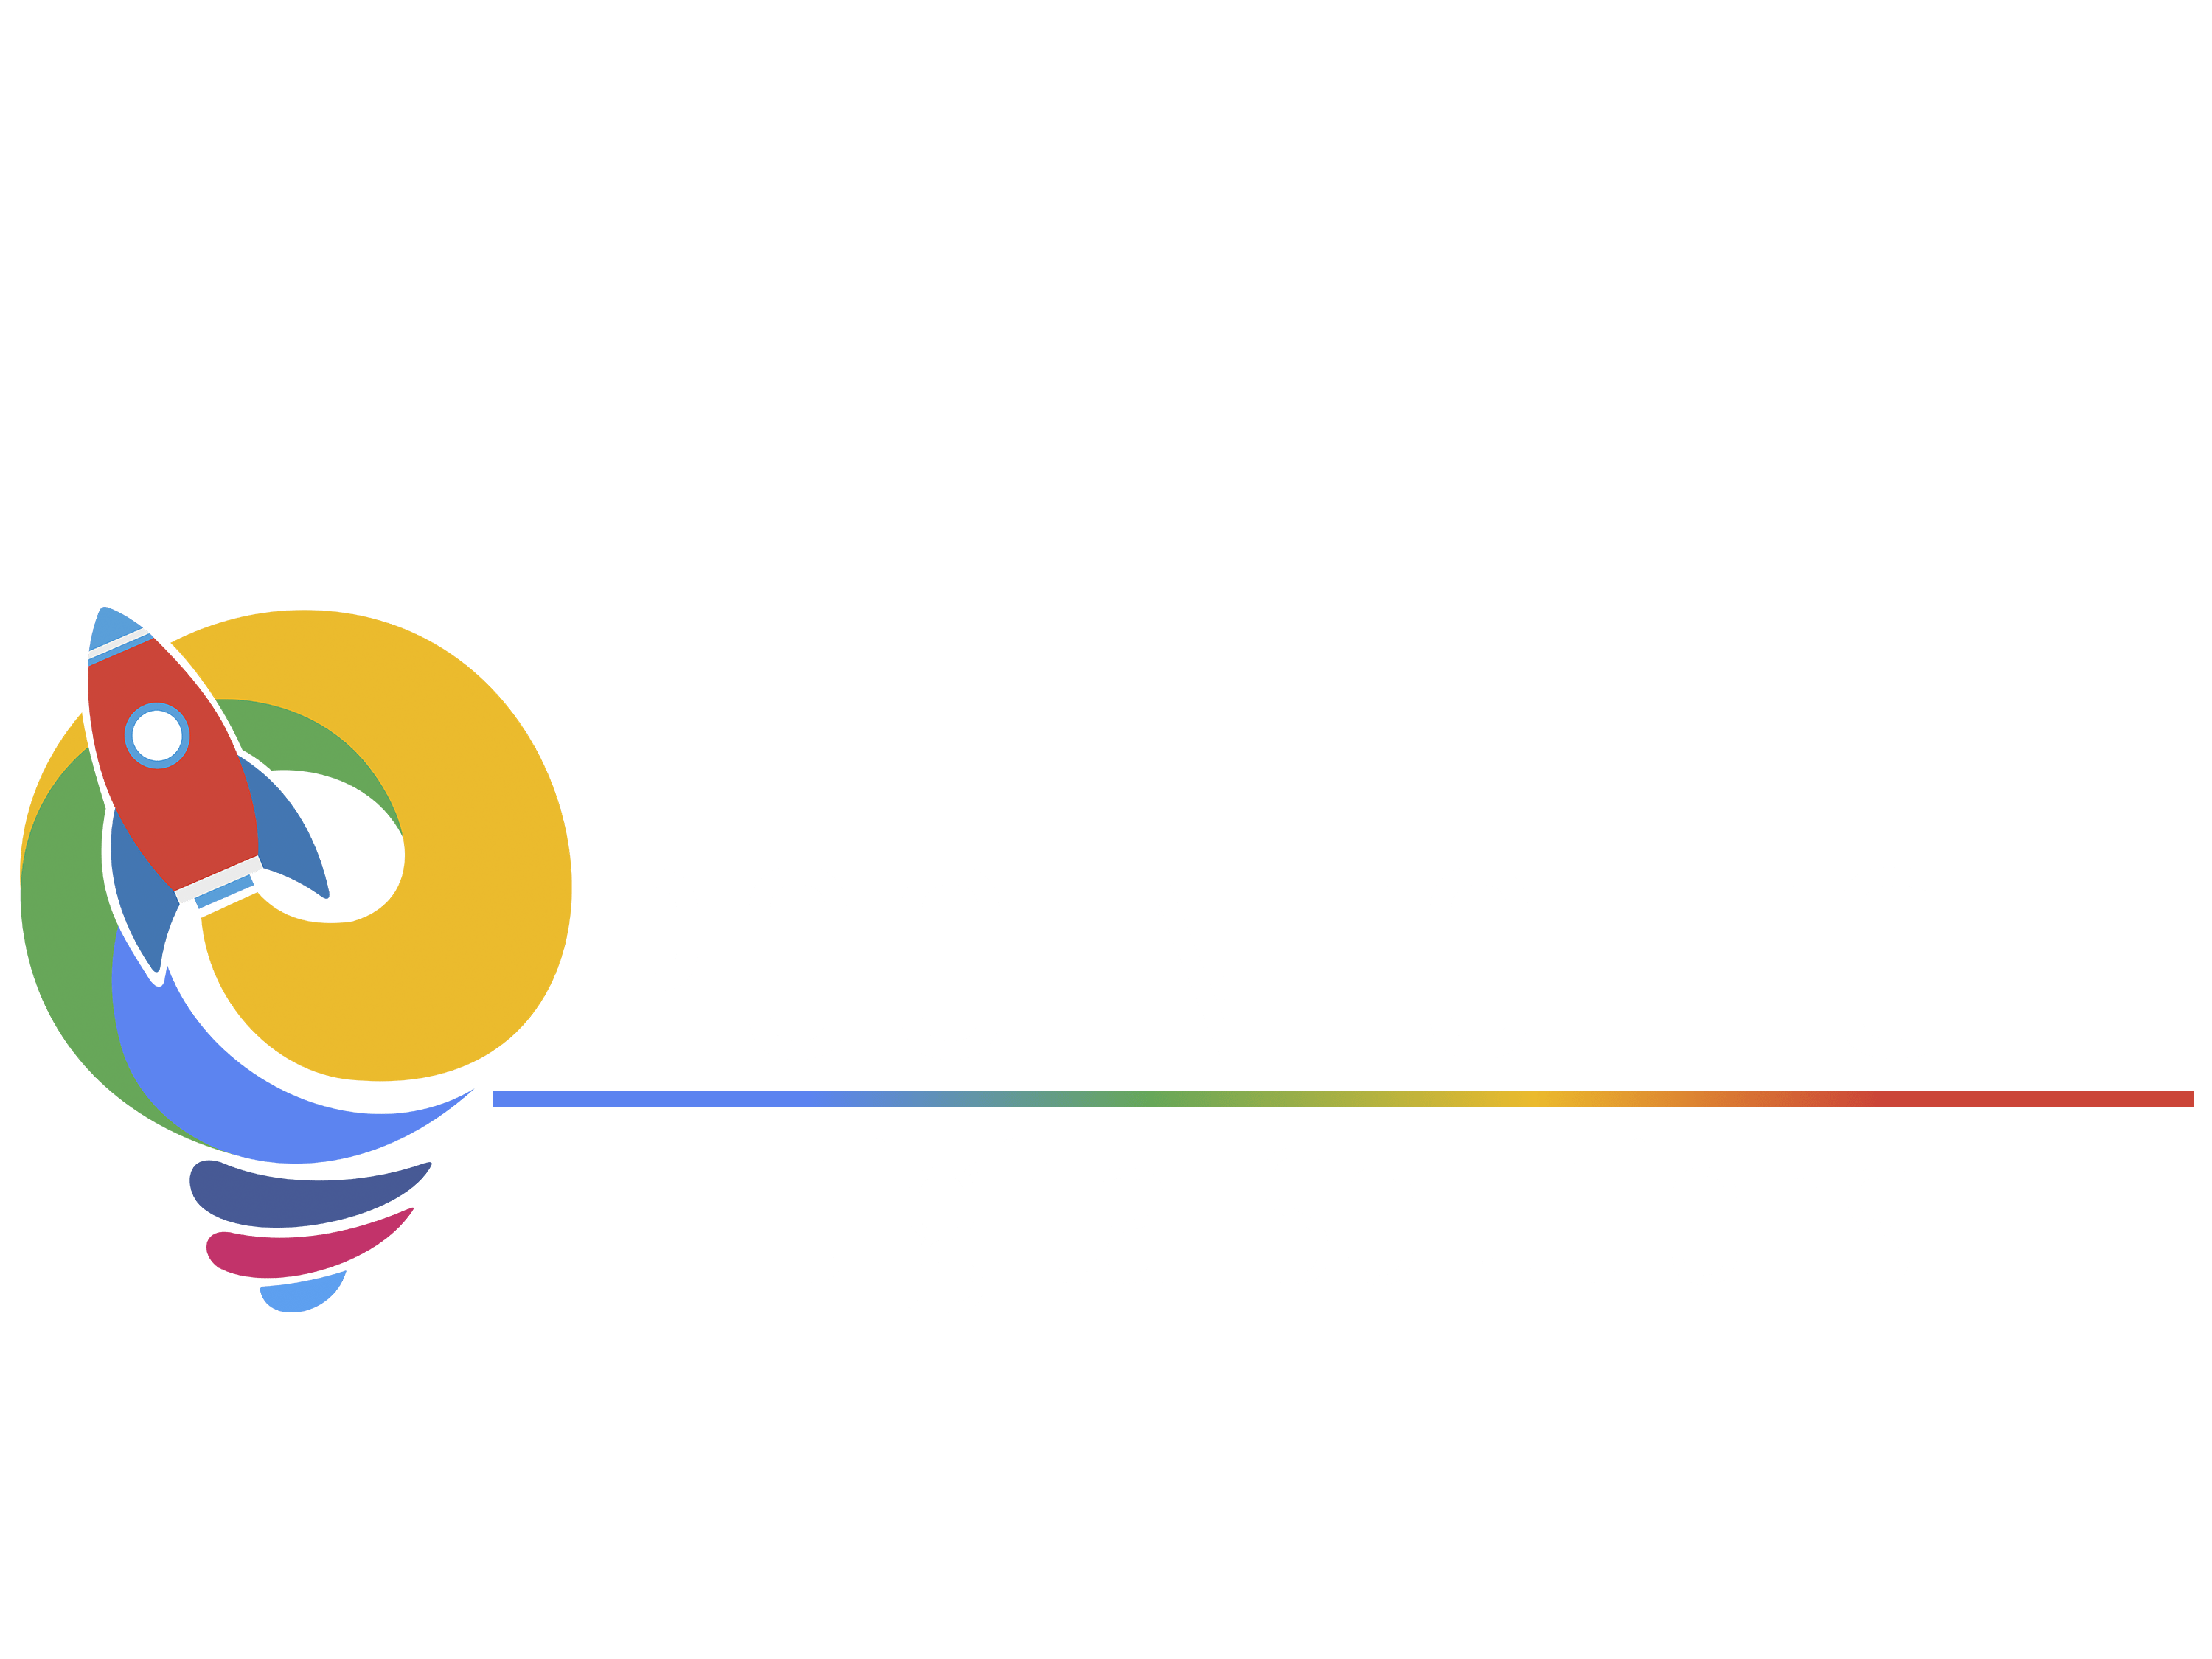 Pooinfotech Digital Solutions Logo